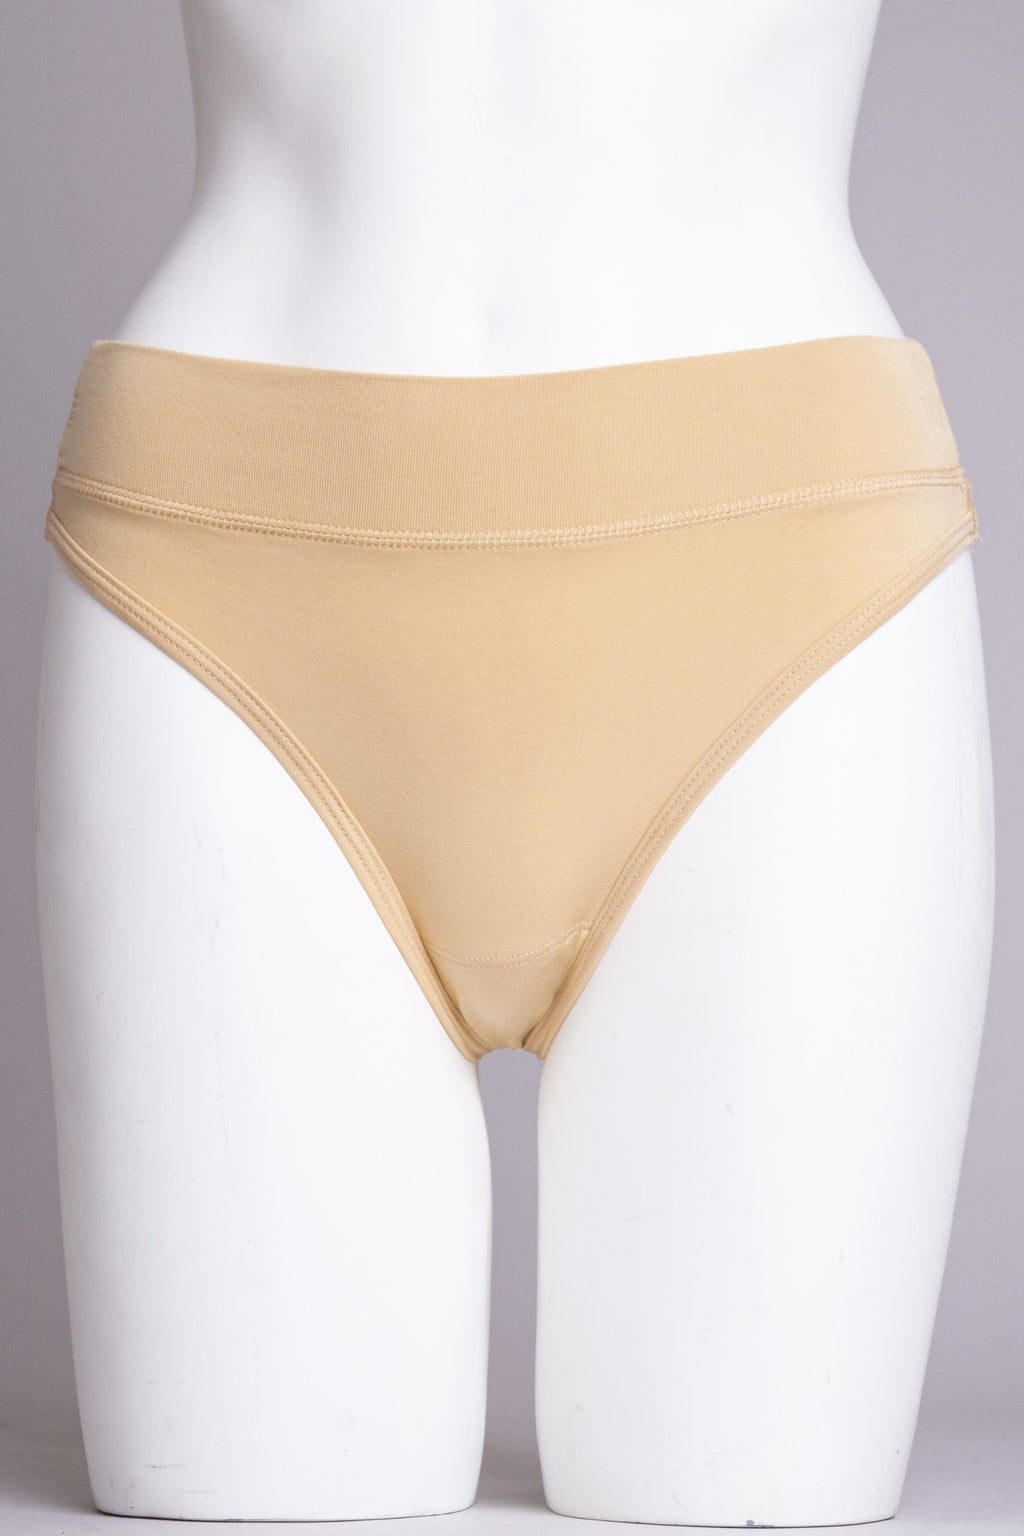 La Thong, Beige, Bamboo - Blue Sky Clothing Co